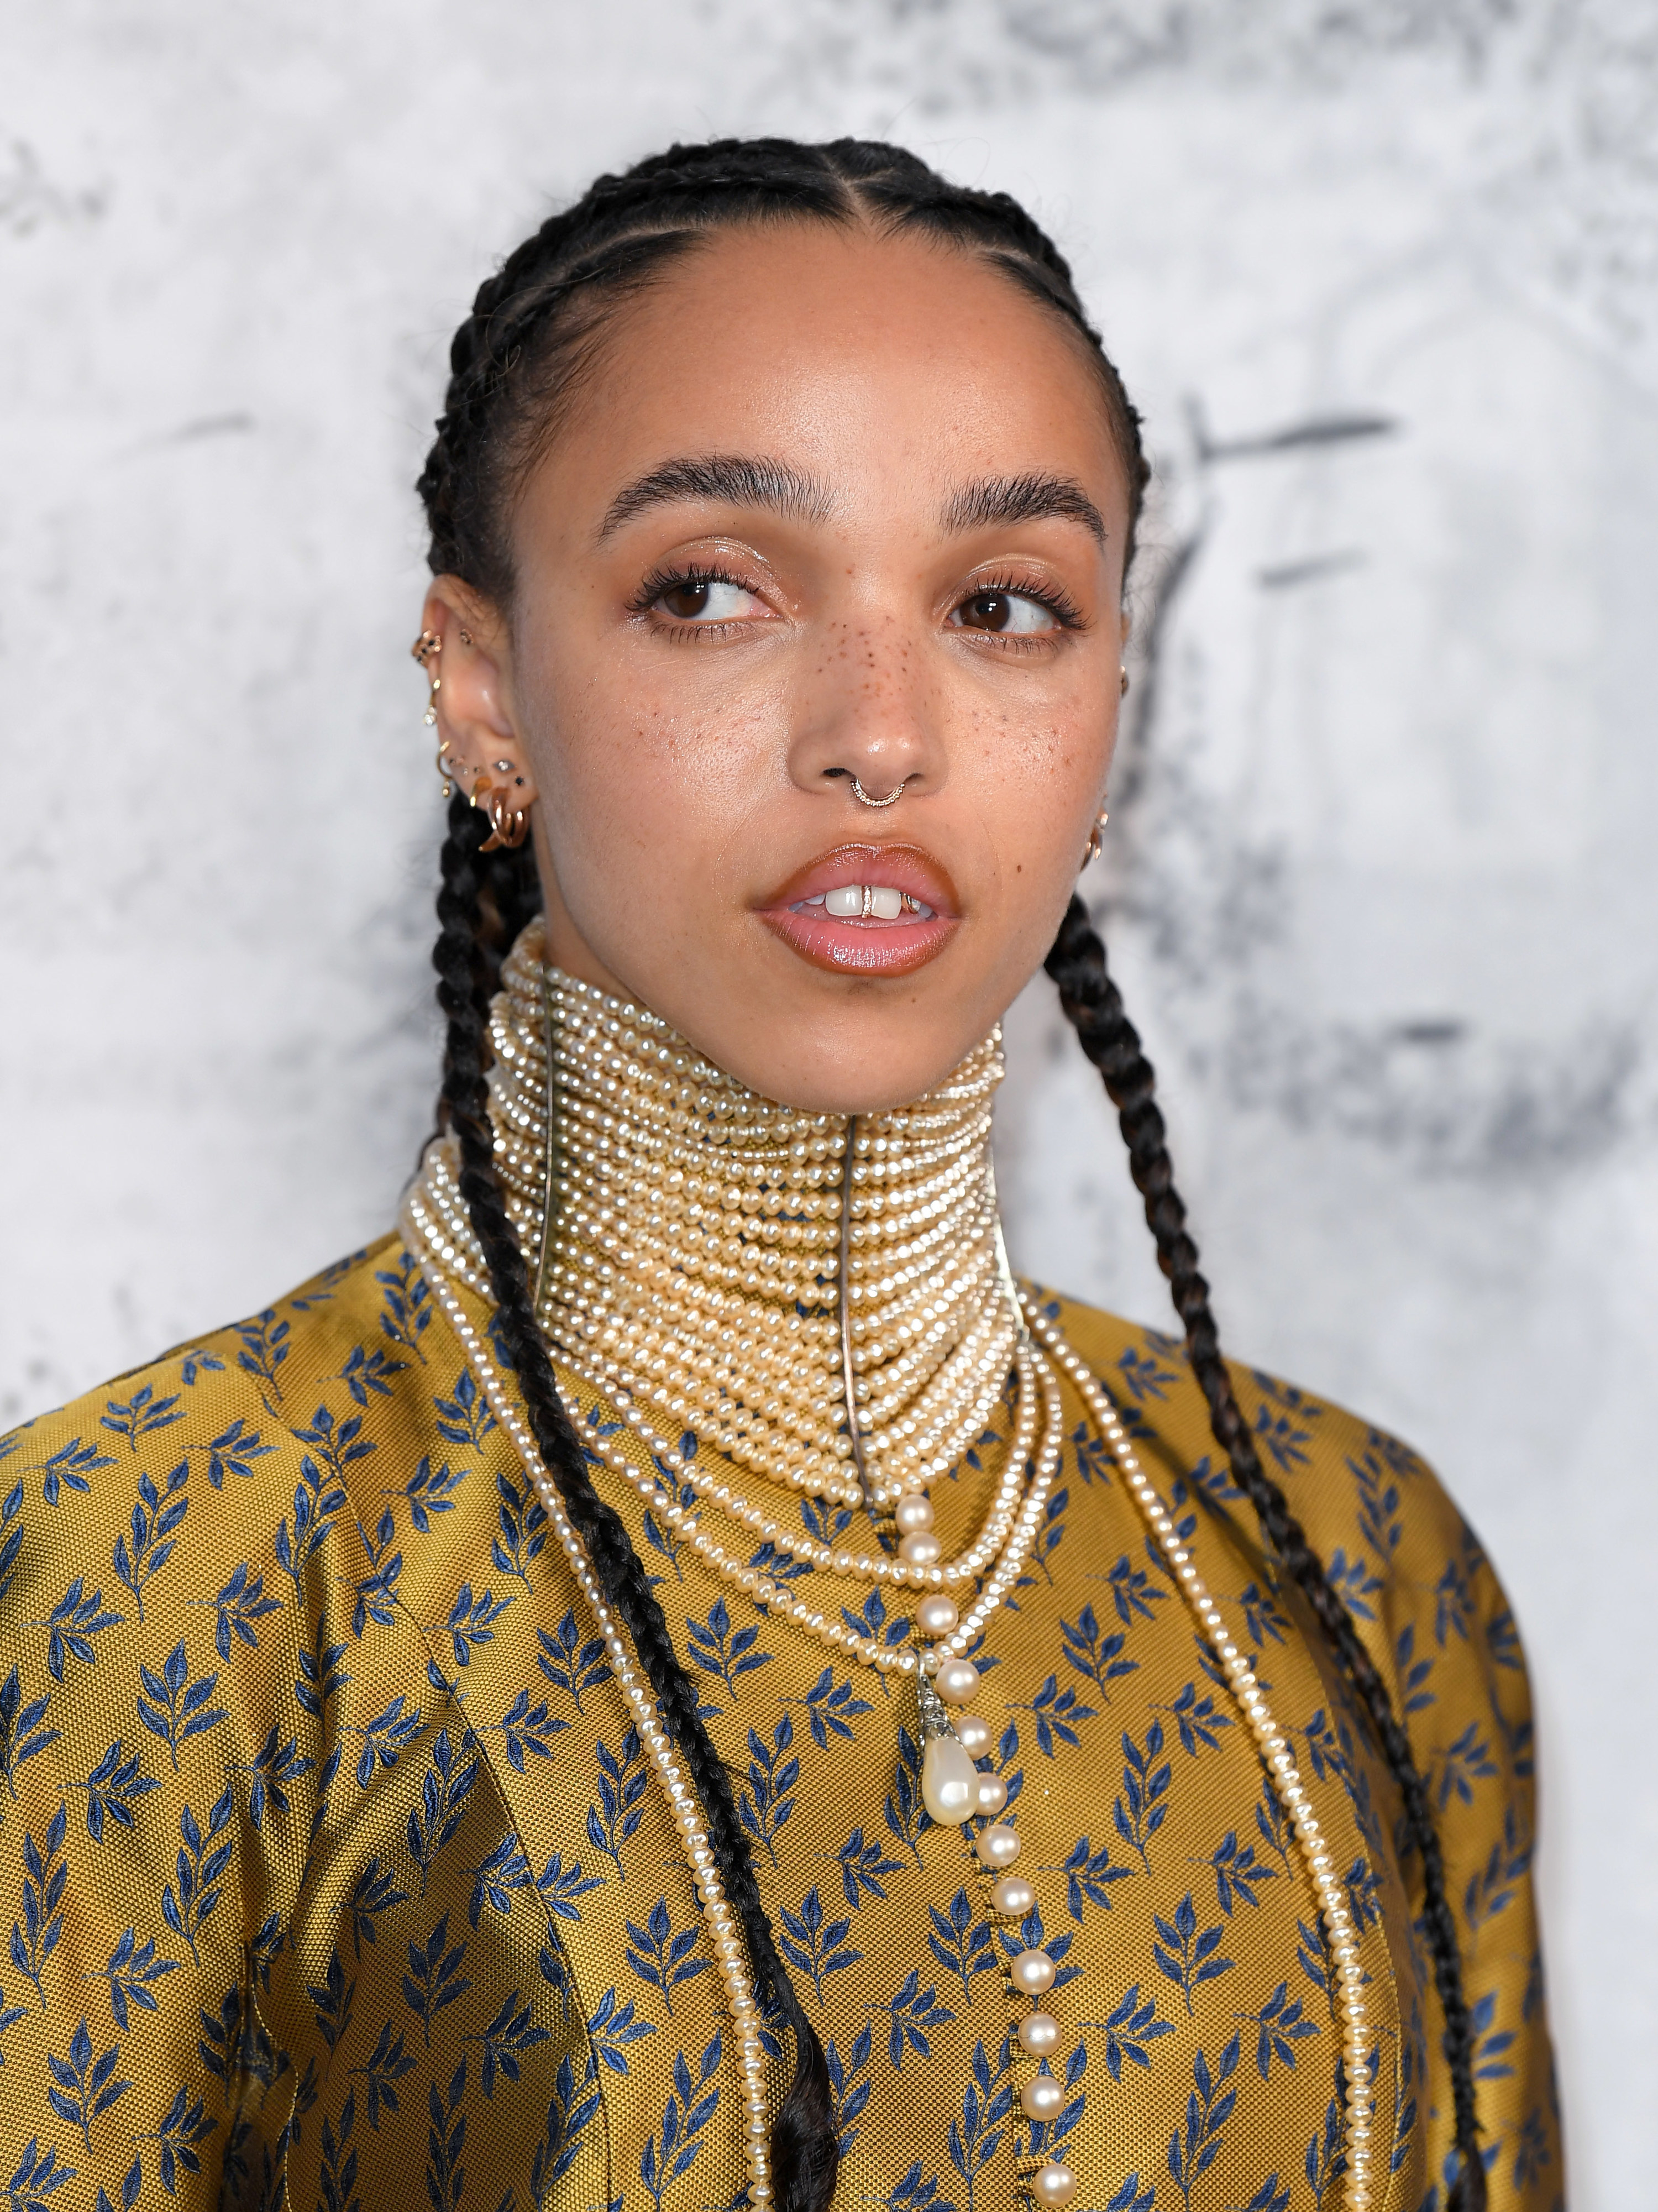 FKA Twigs attends The Summer Party 2019 Presented By Serpentine Galleries And Chanel wearing a high-collared pearl necklace and her hair braided back